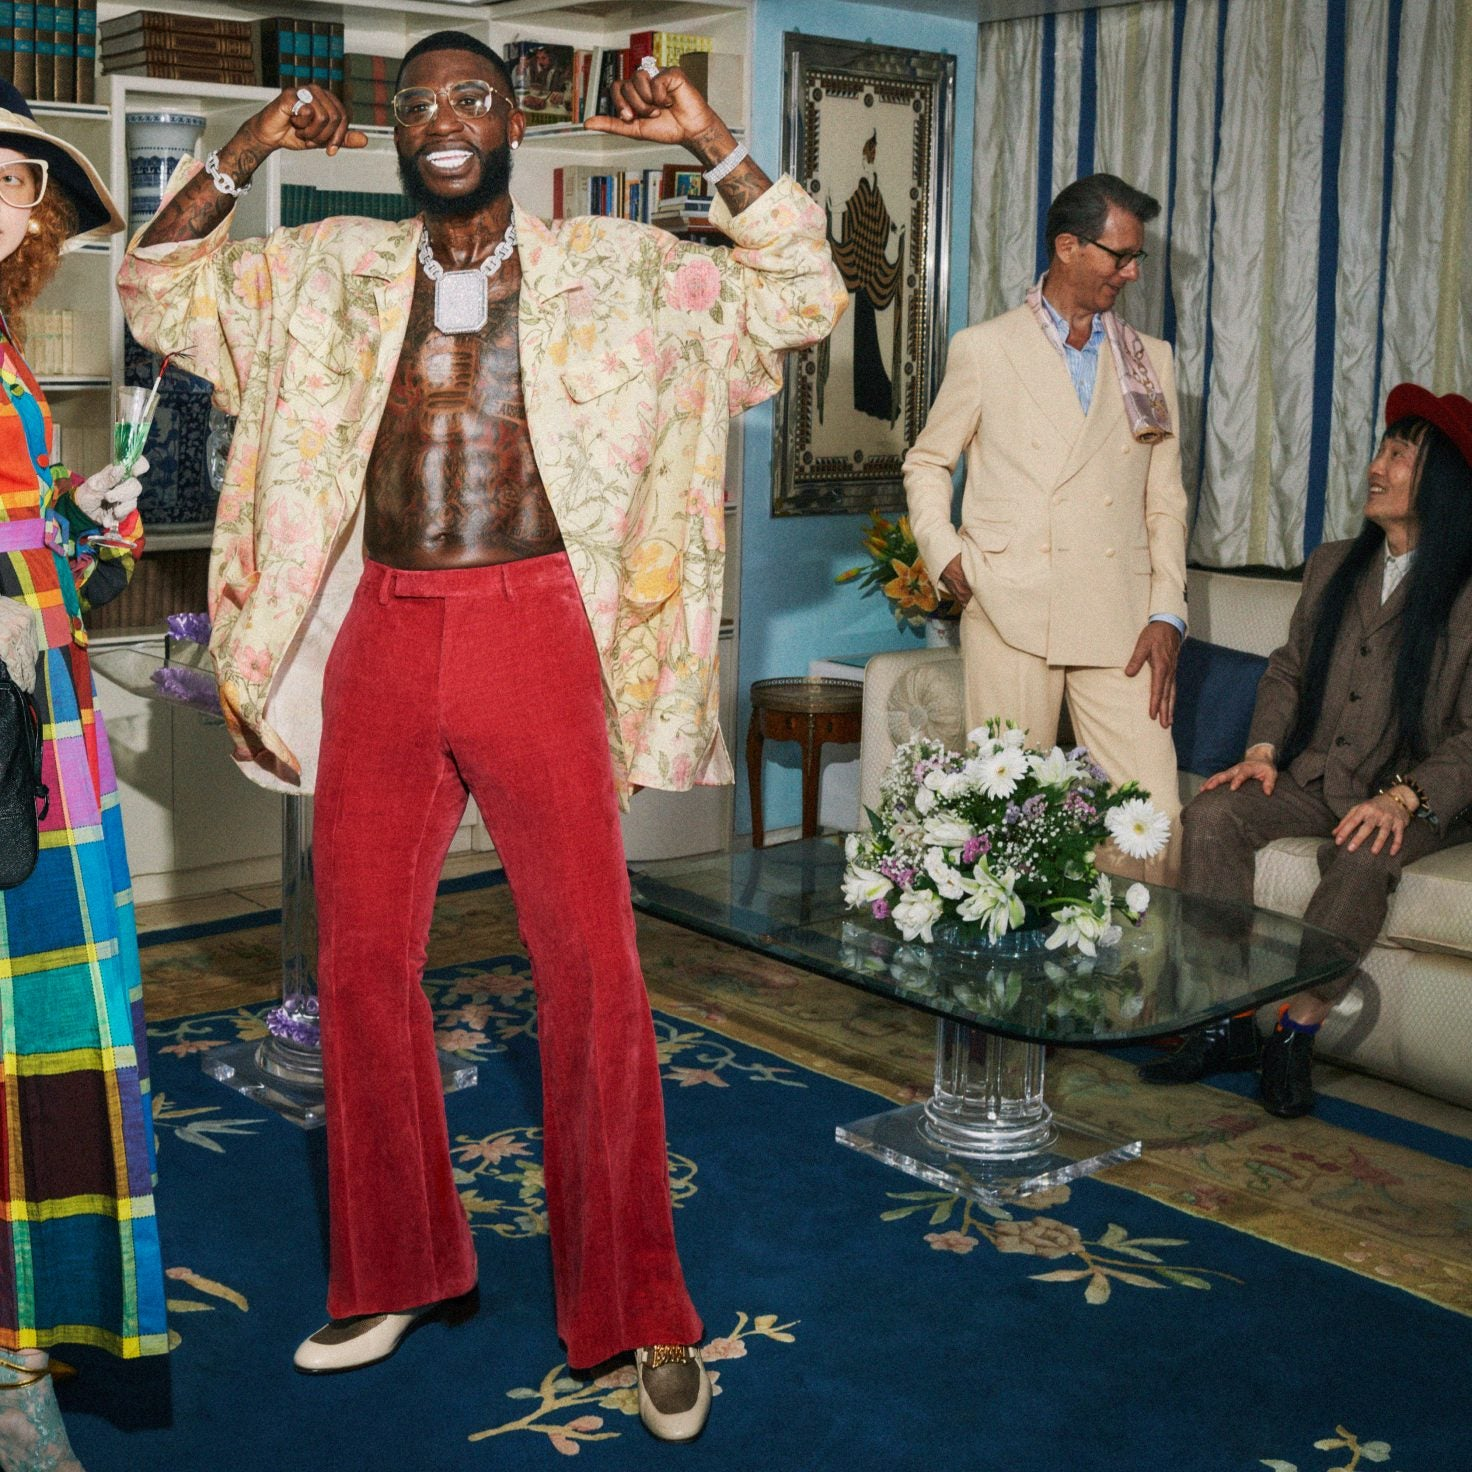 Gucci Mane Is the New Face of Gucci's S/S 2020 Campaign